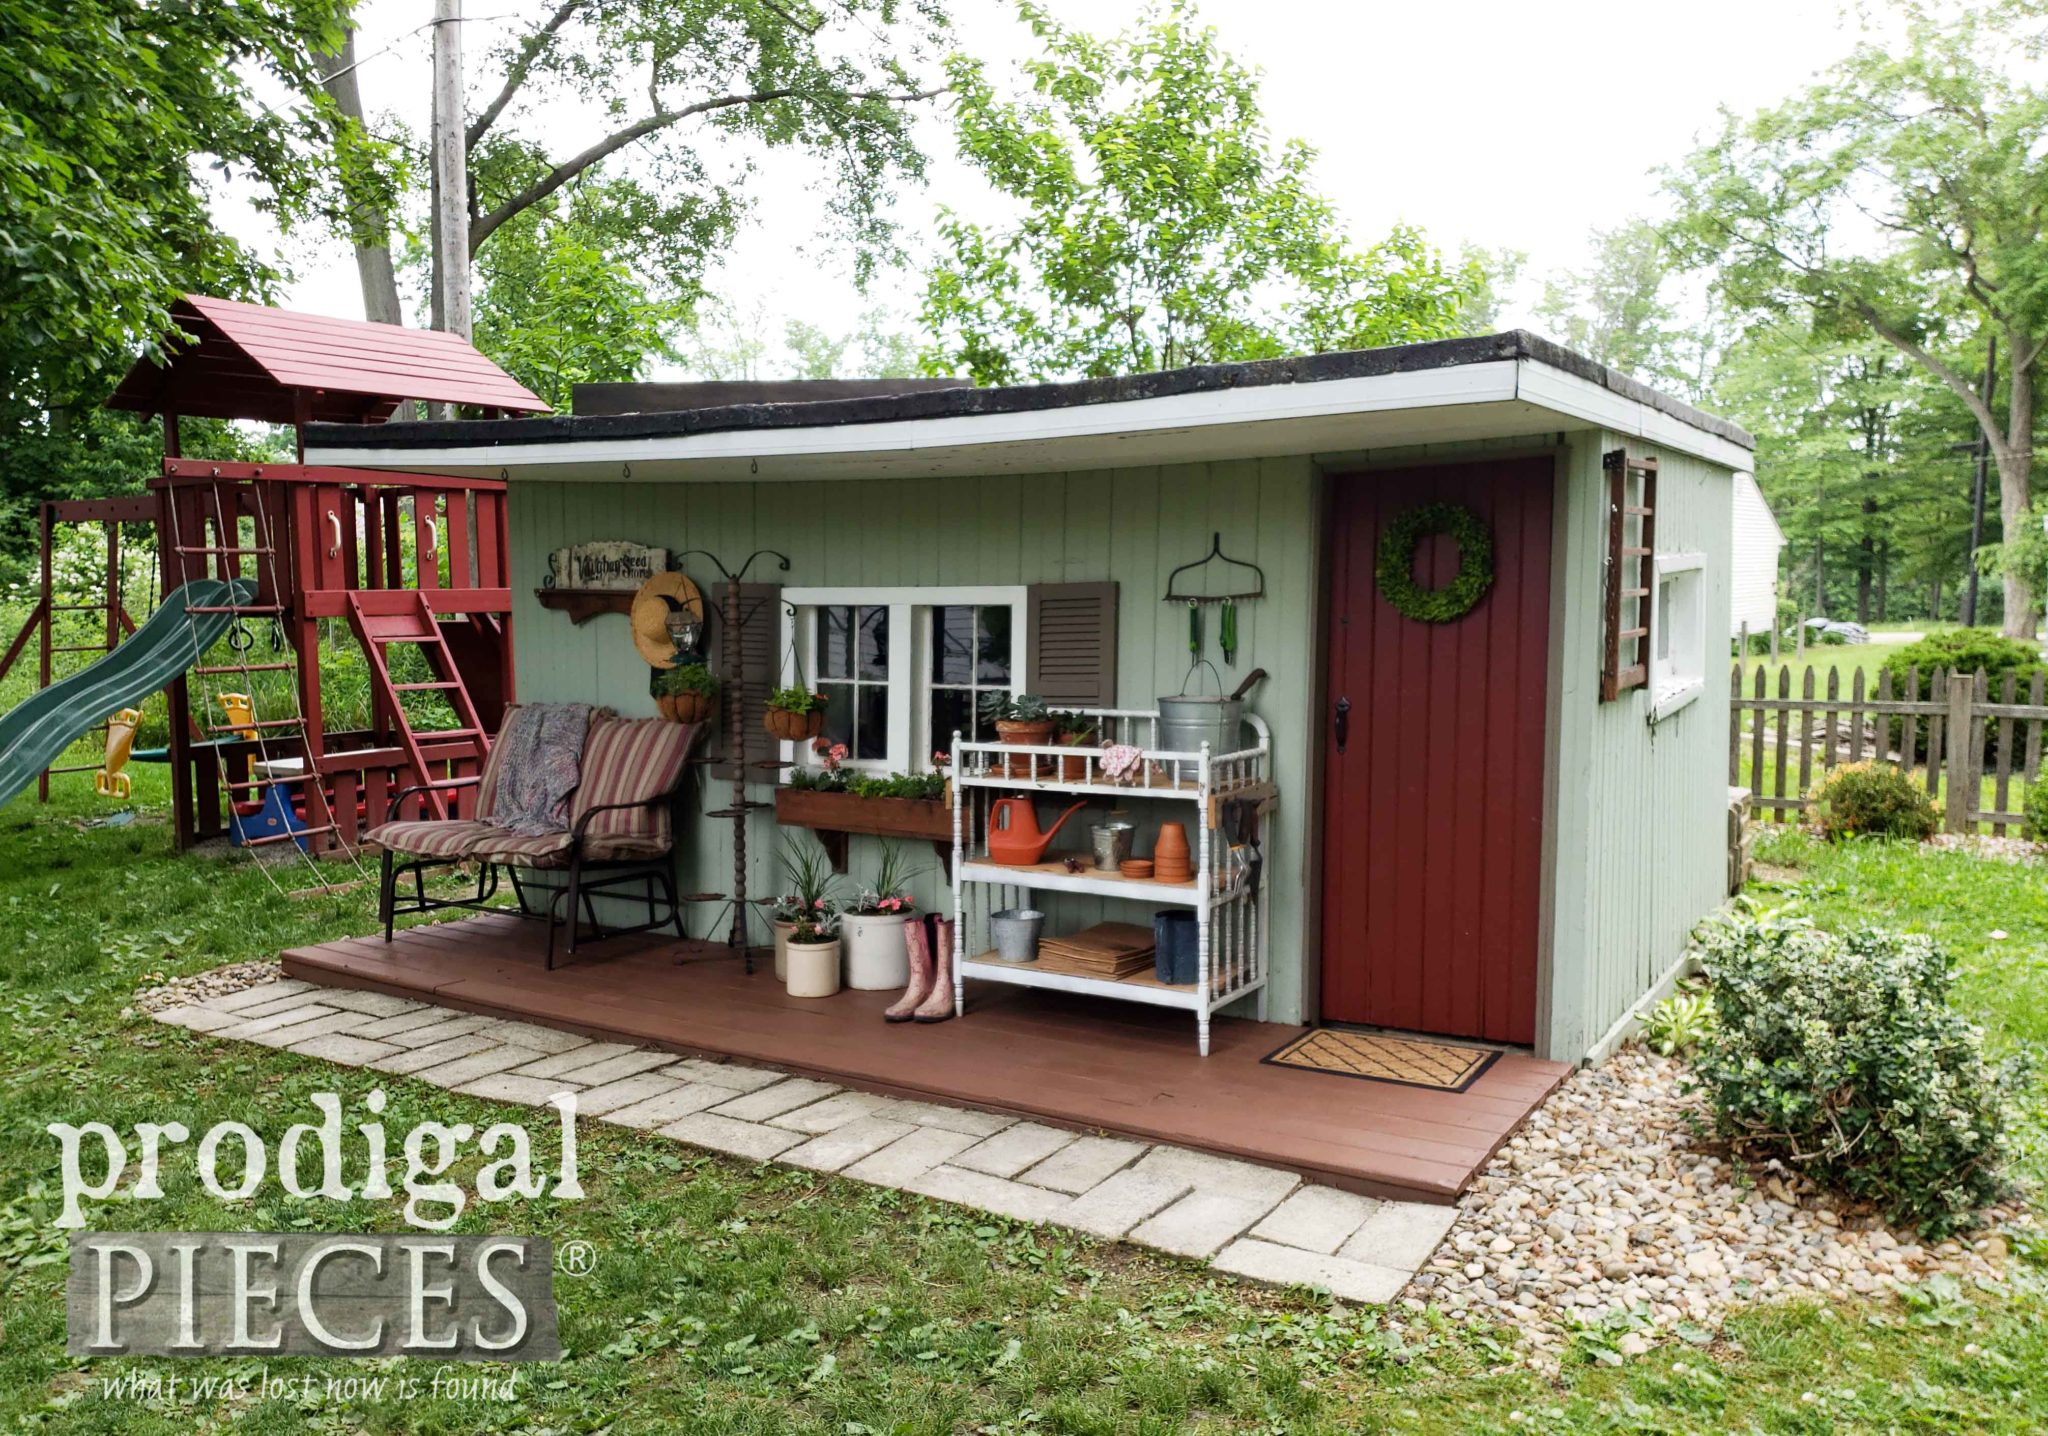 Outdoor Garden Shed Updated and Refreshed with Upcycled Spring Decor by Larissa of Prodigal Pieces | prodigalpieces.com